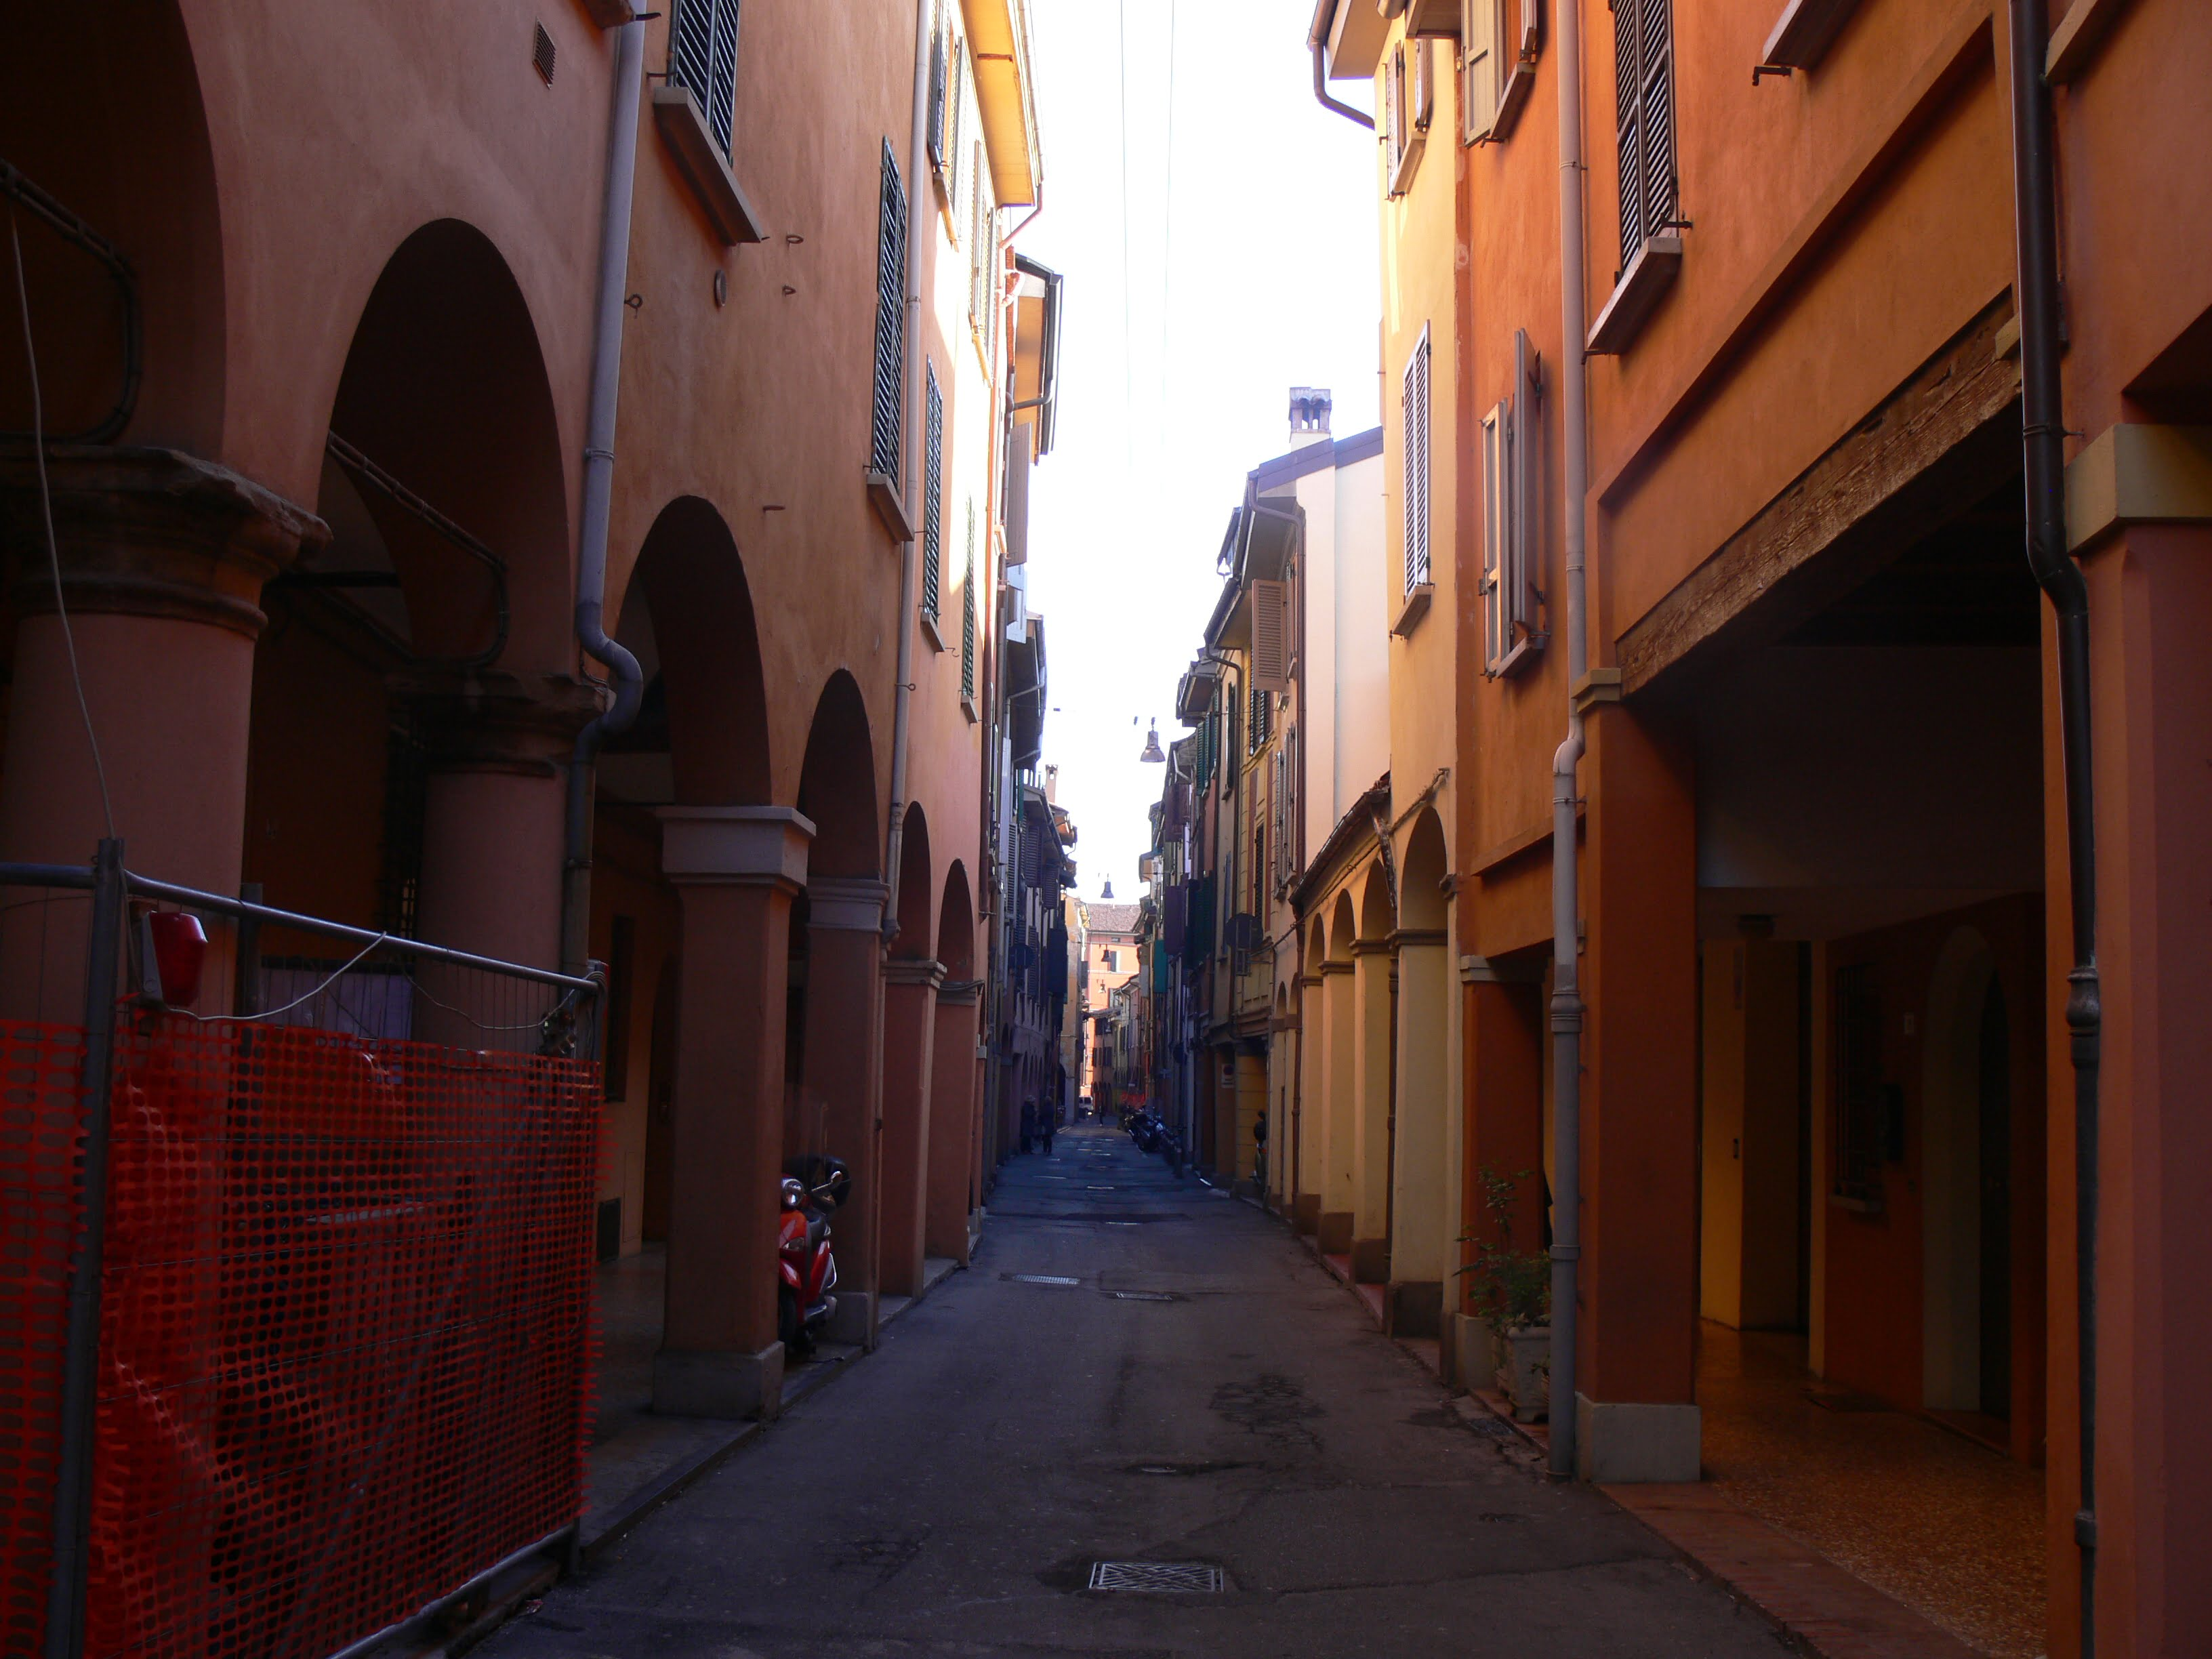 Our street in Bologna